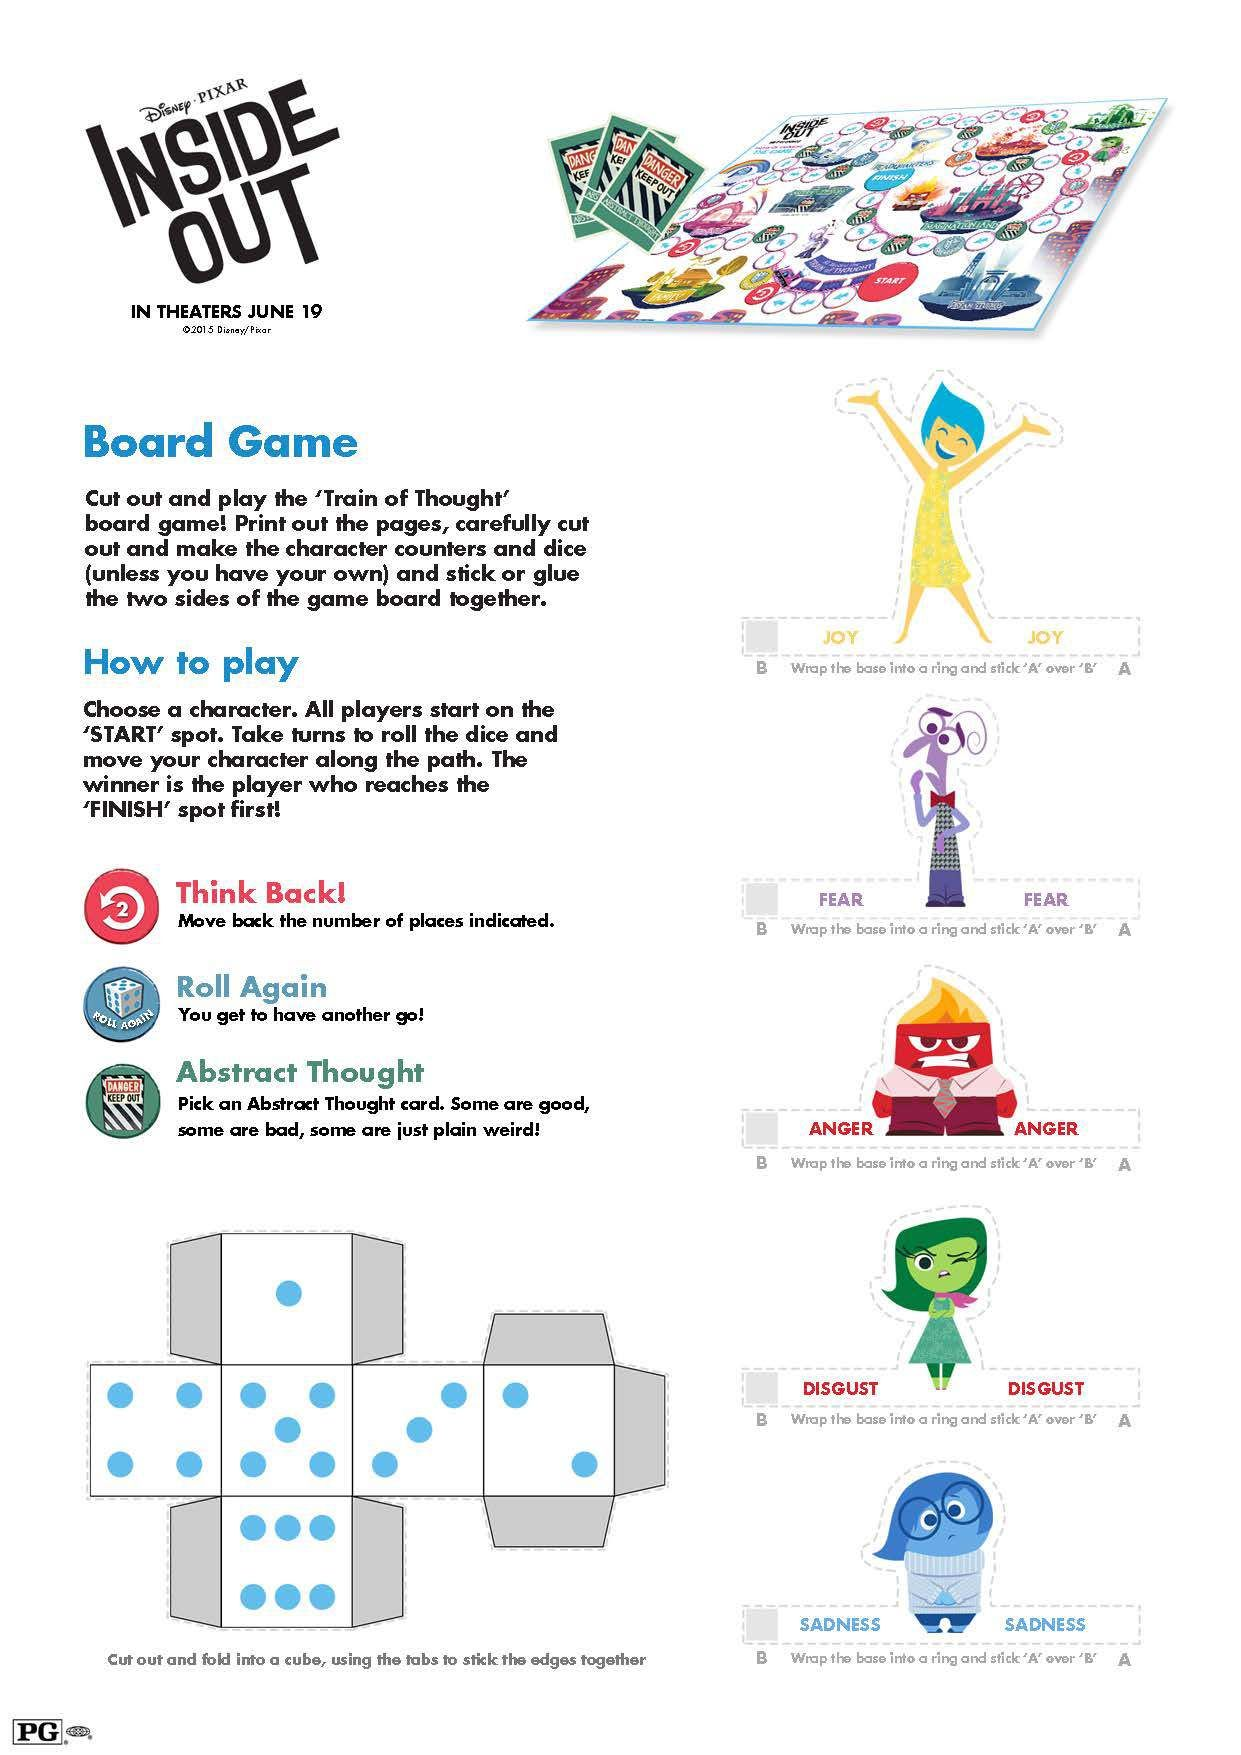 free printable inside out board game and activities for kids insideoutevent - Print Out Activities